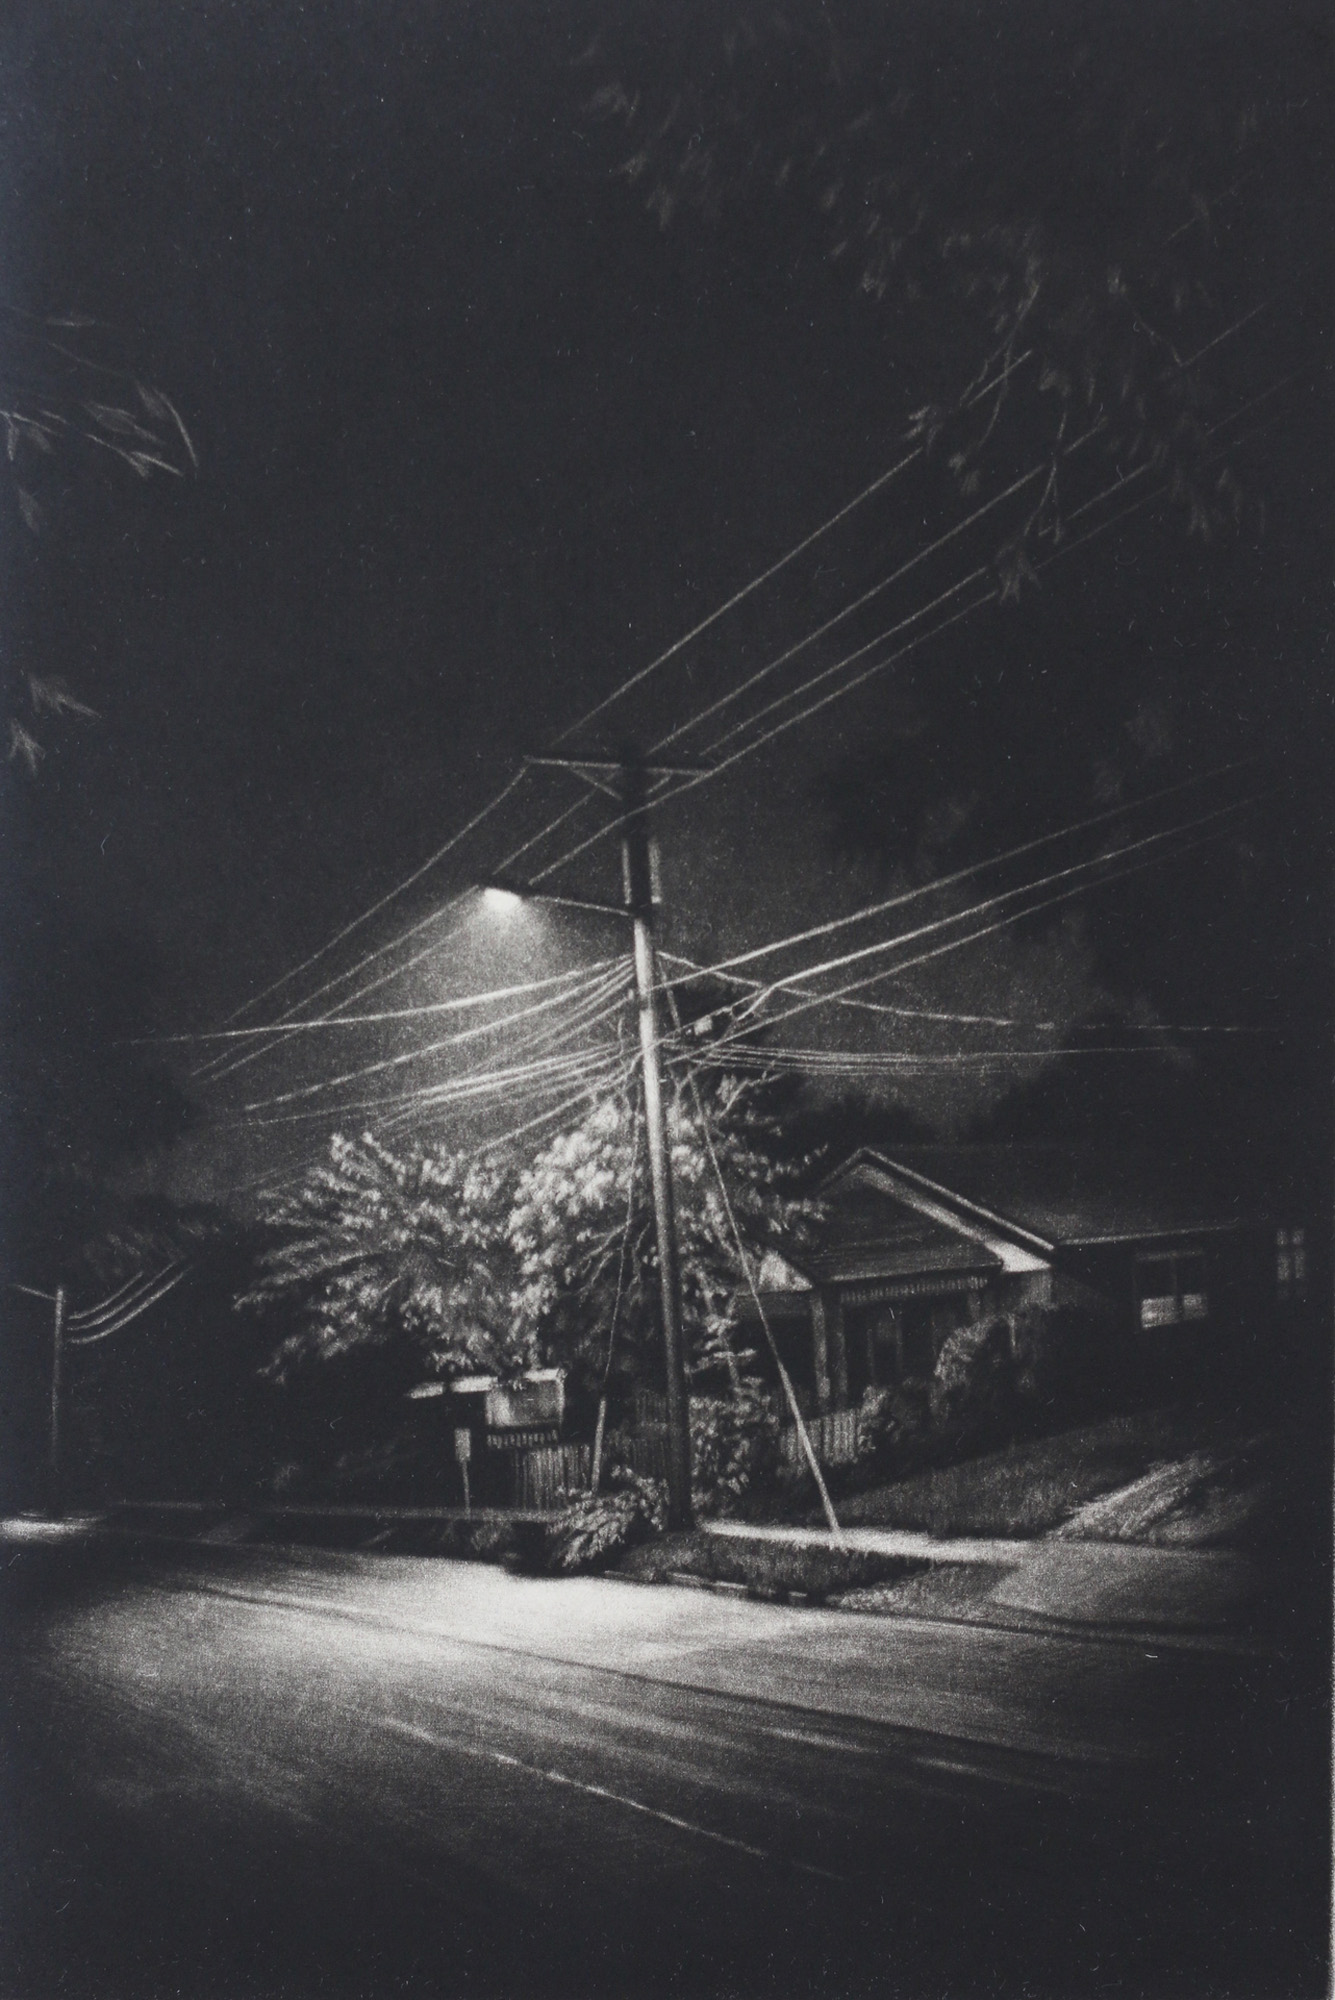 Jacob Crook   Beacon II  Mezzotint 9 x 6 Inches, APS 211G